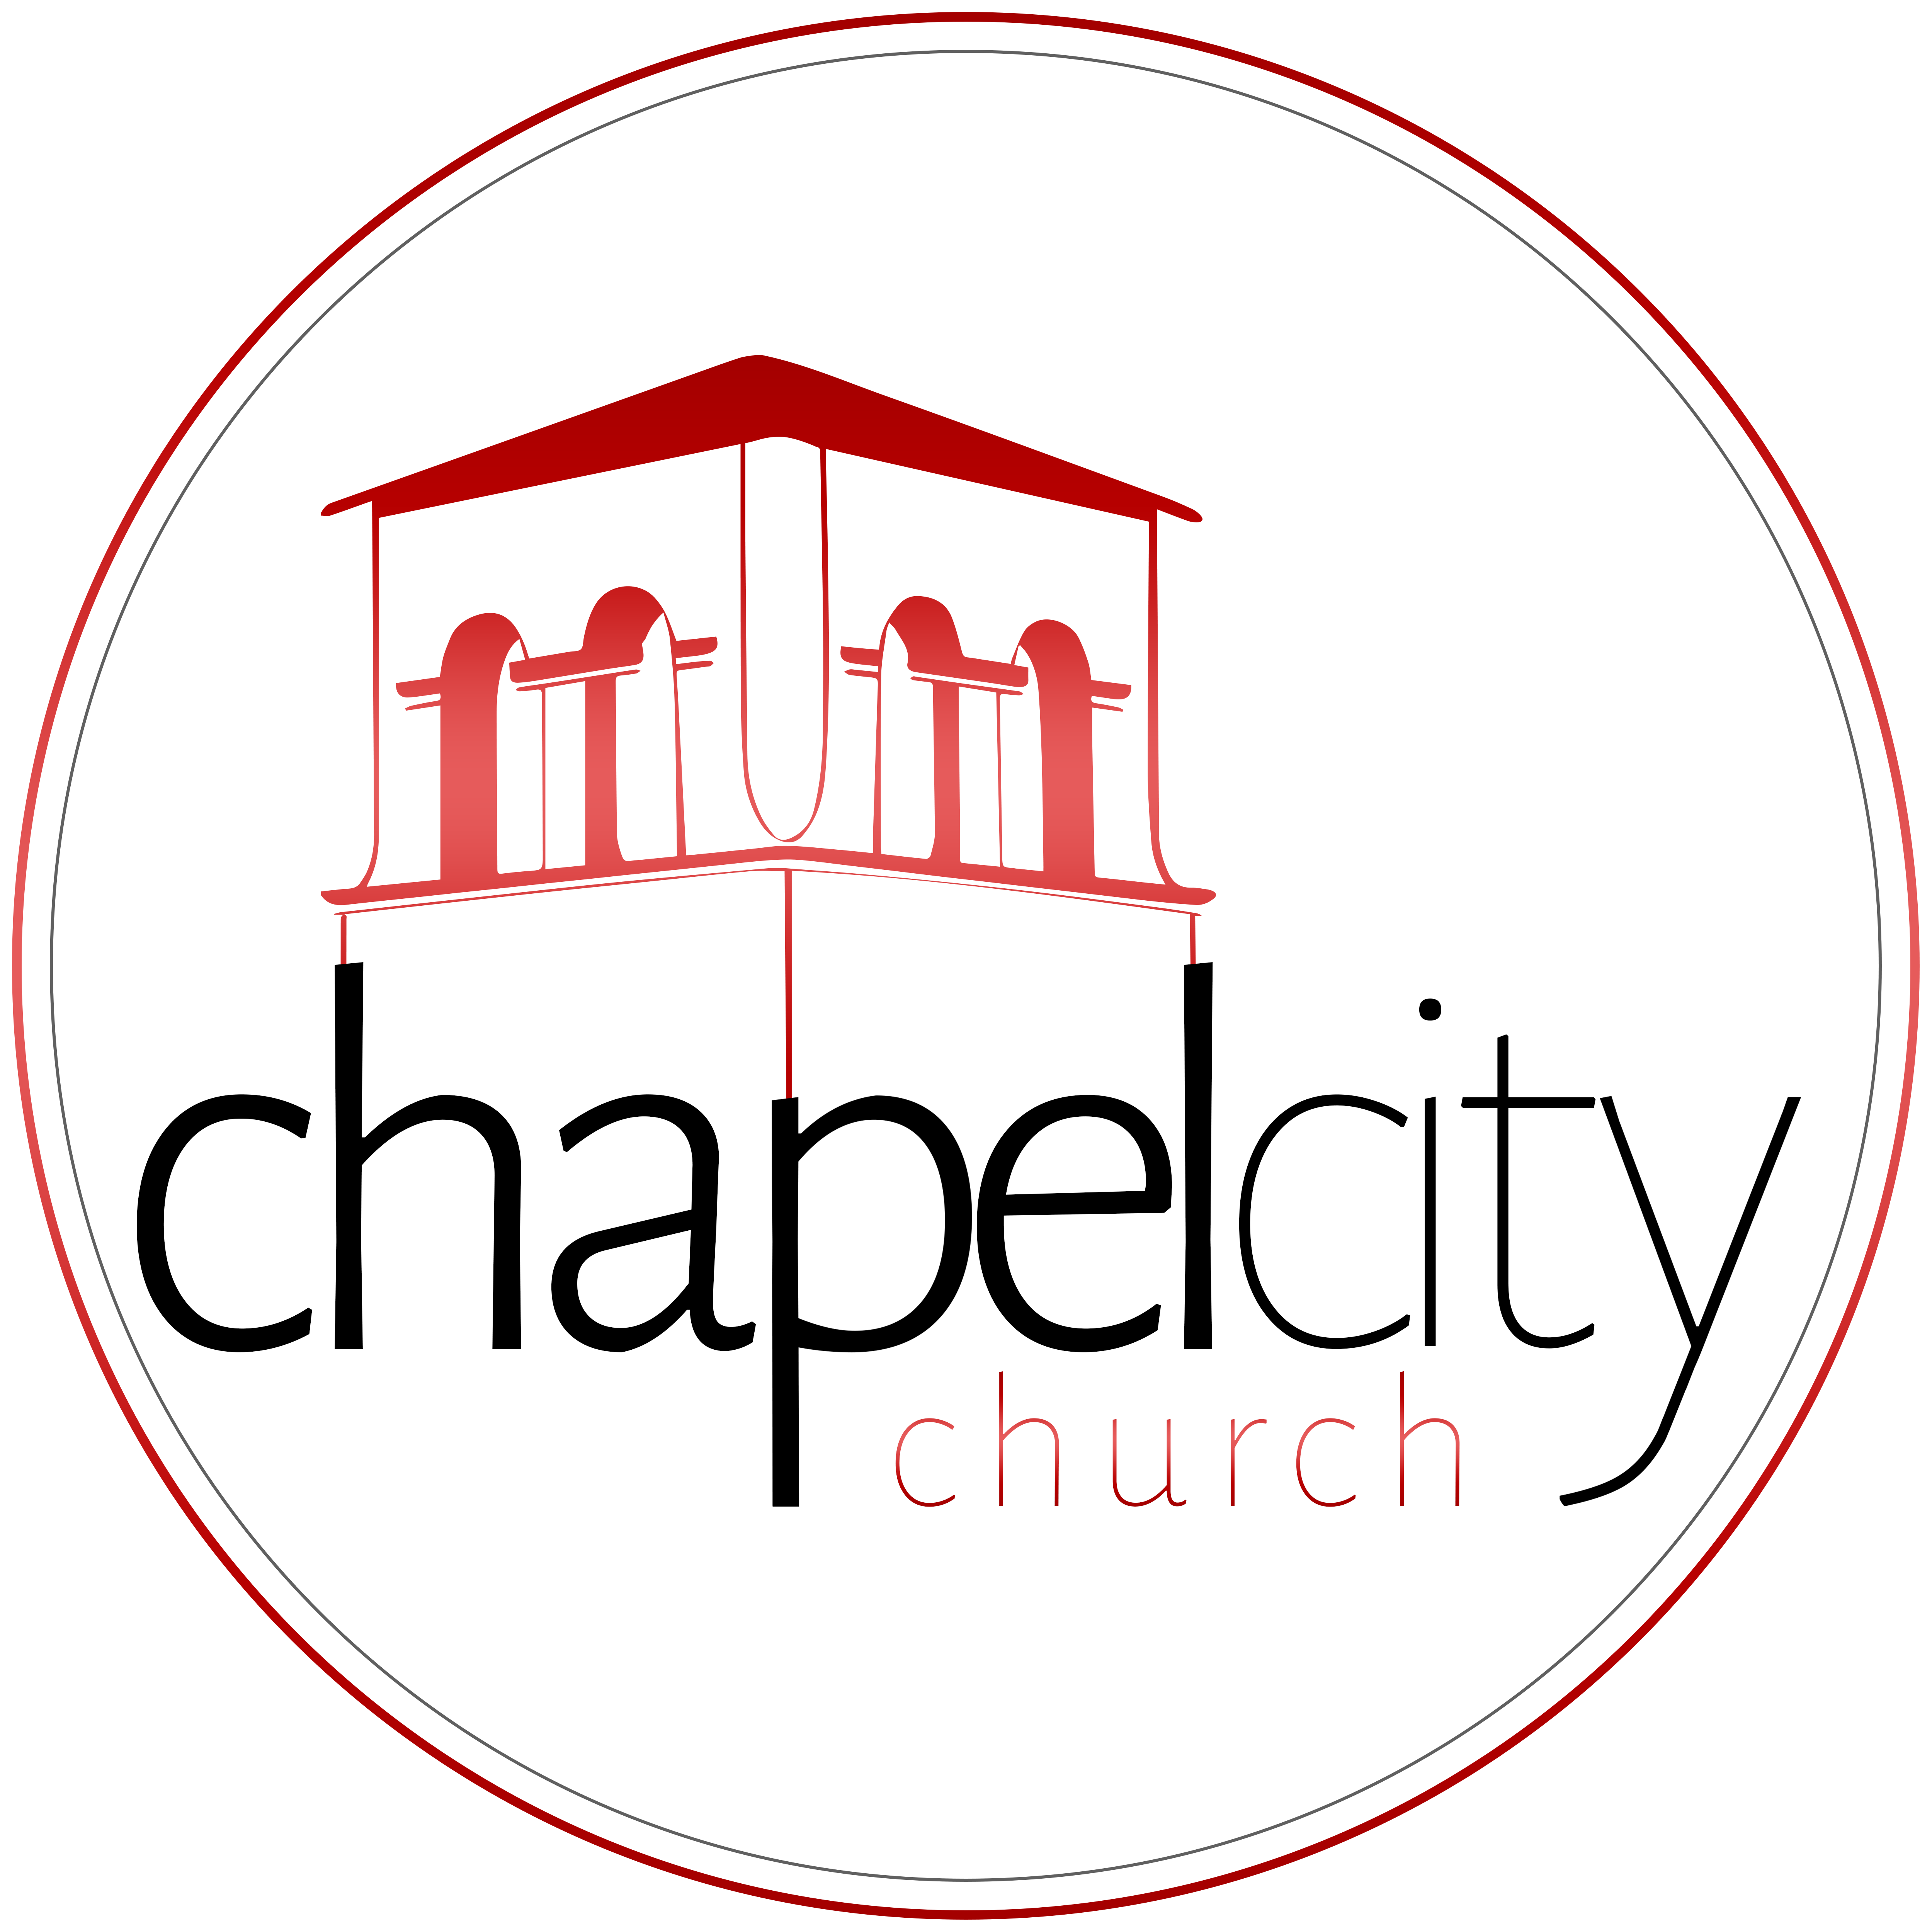 Chapel City Church